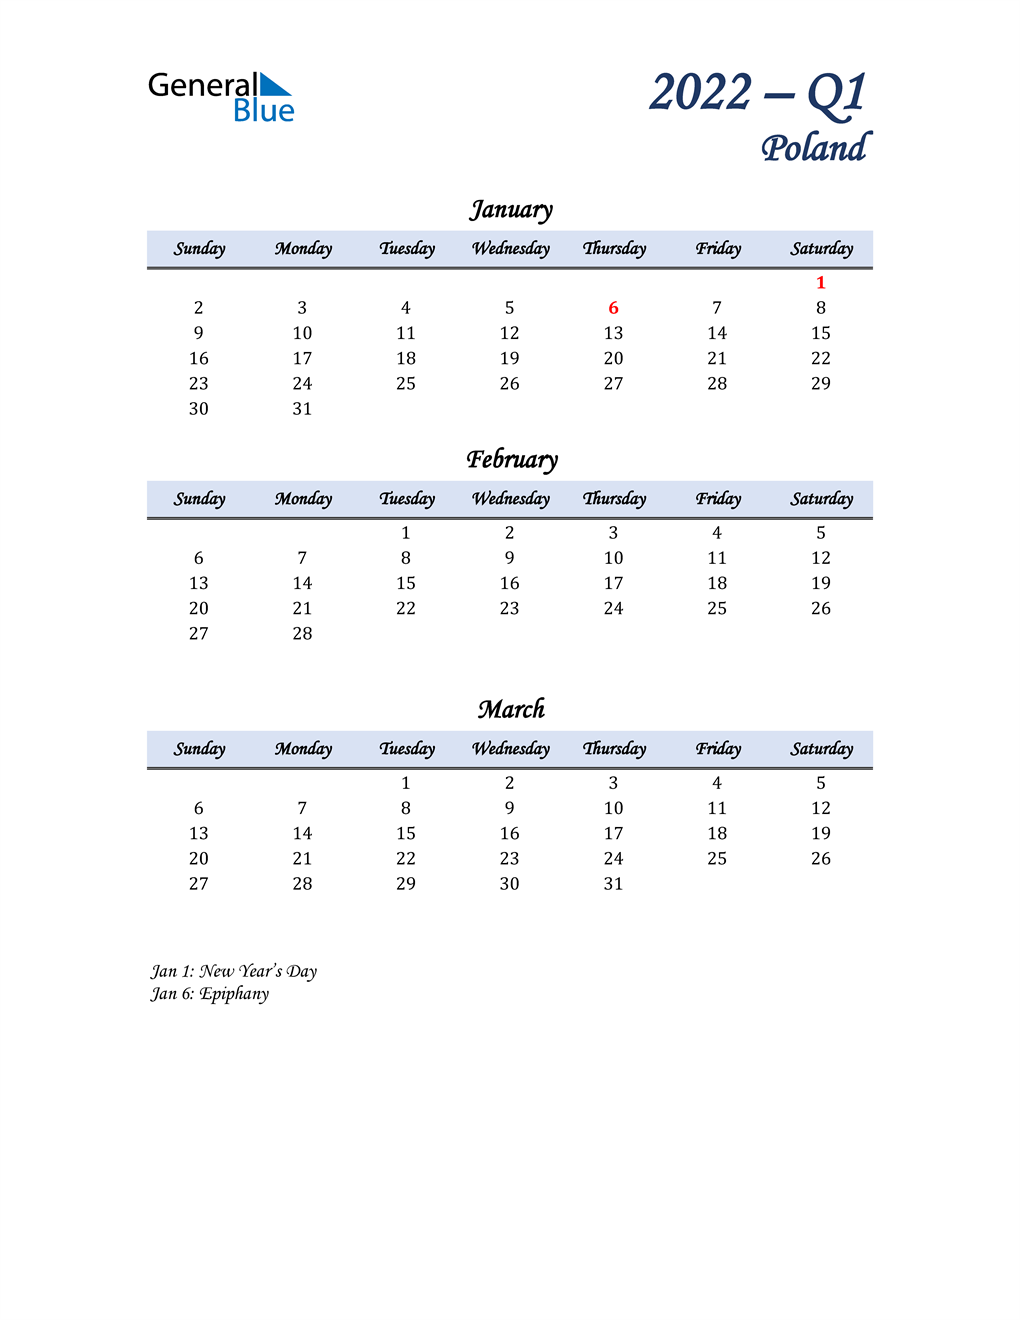 January, February, and March Calendar for Poland